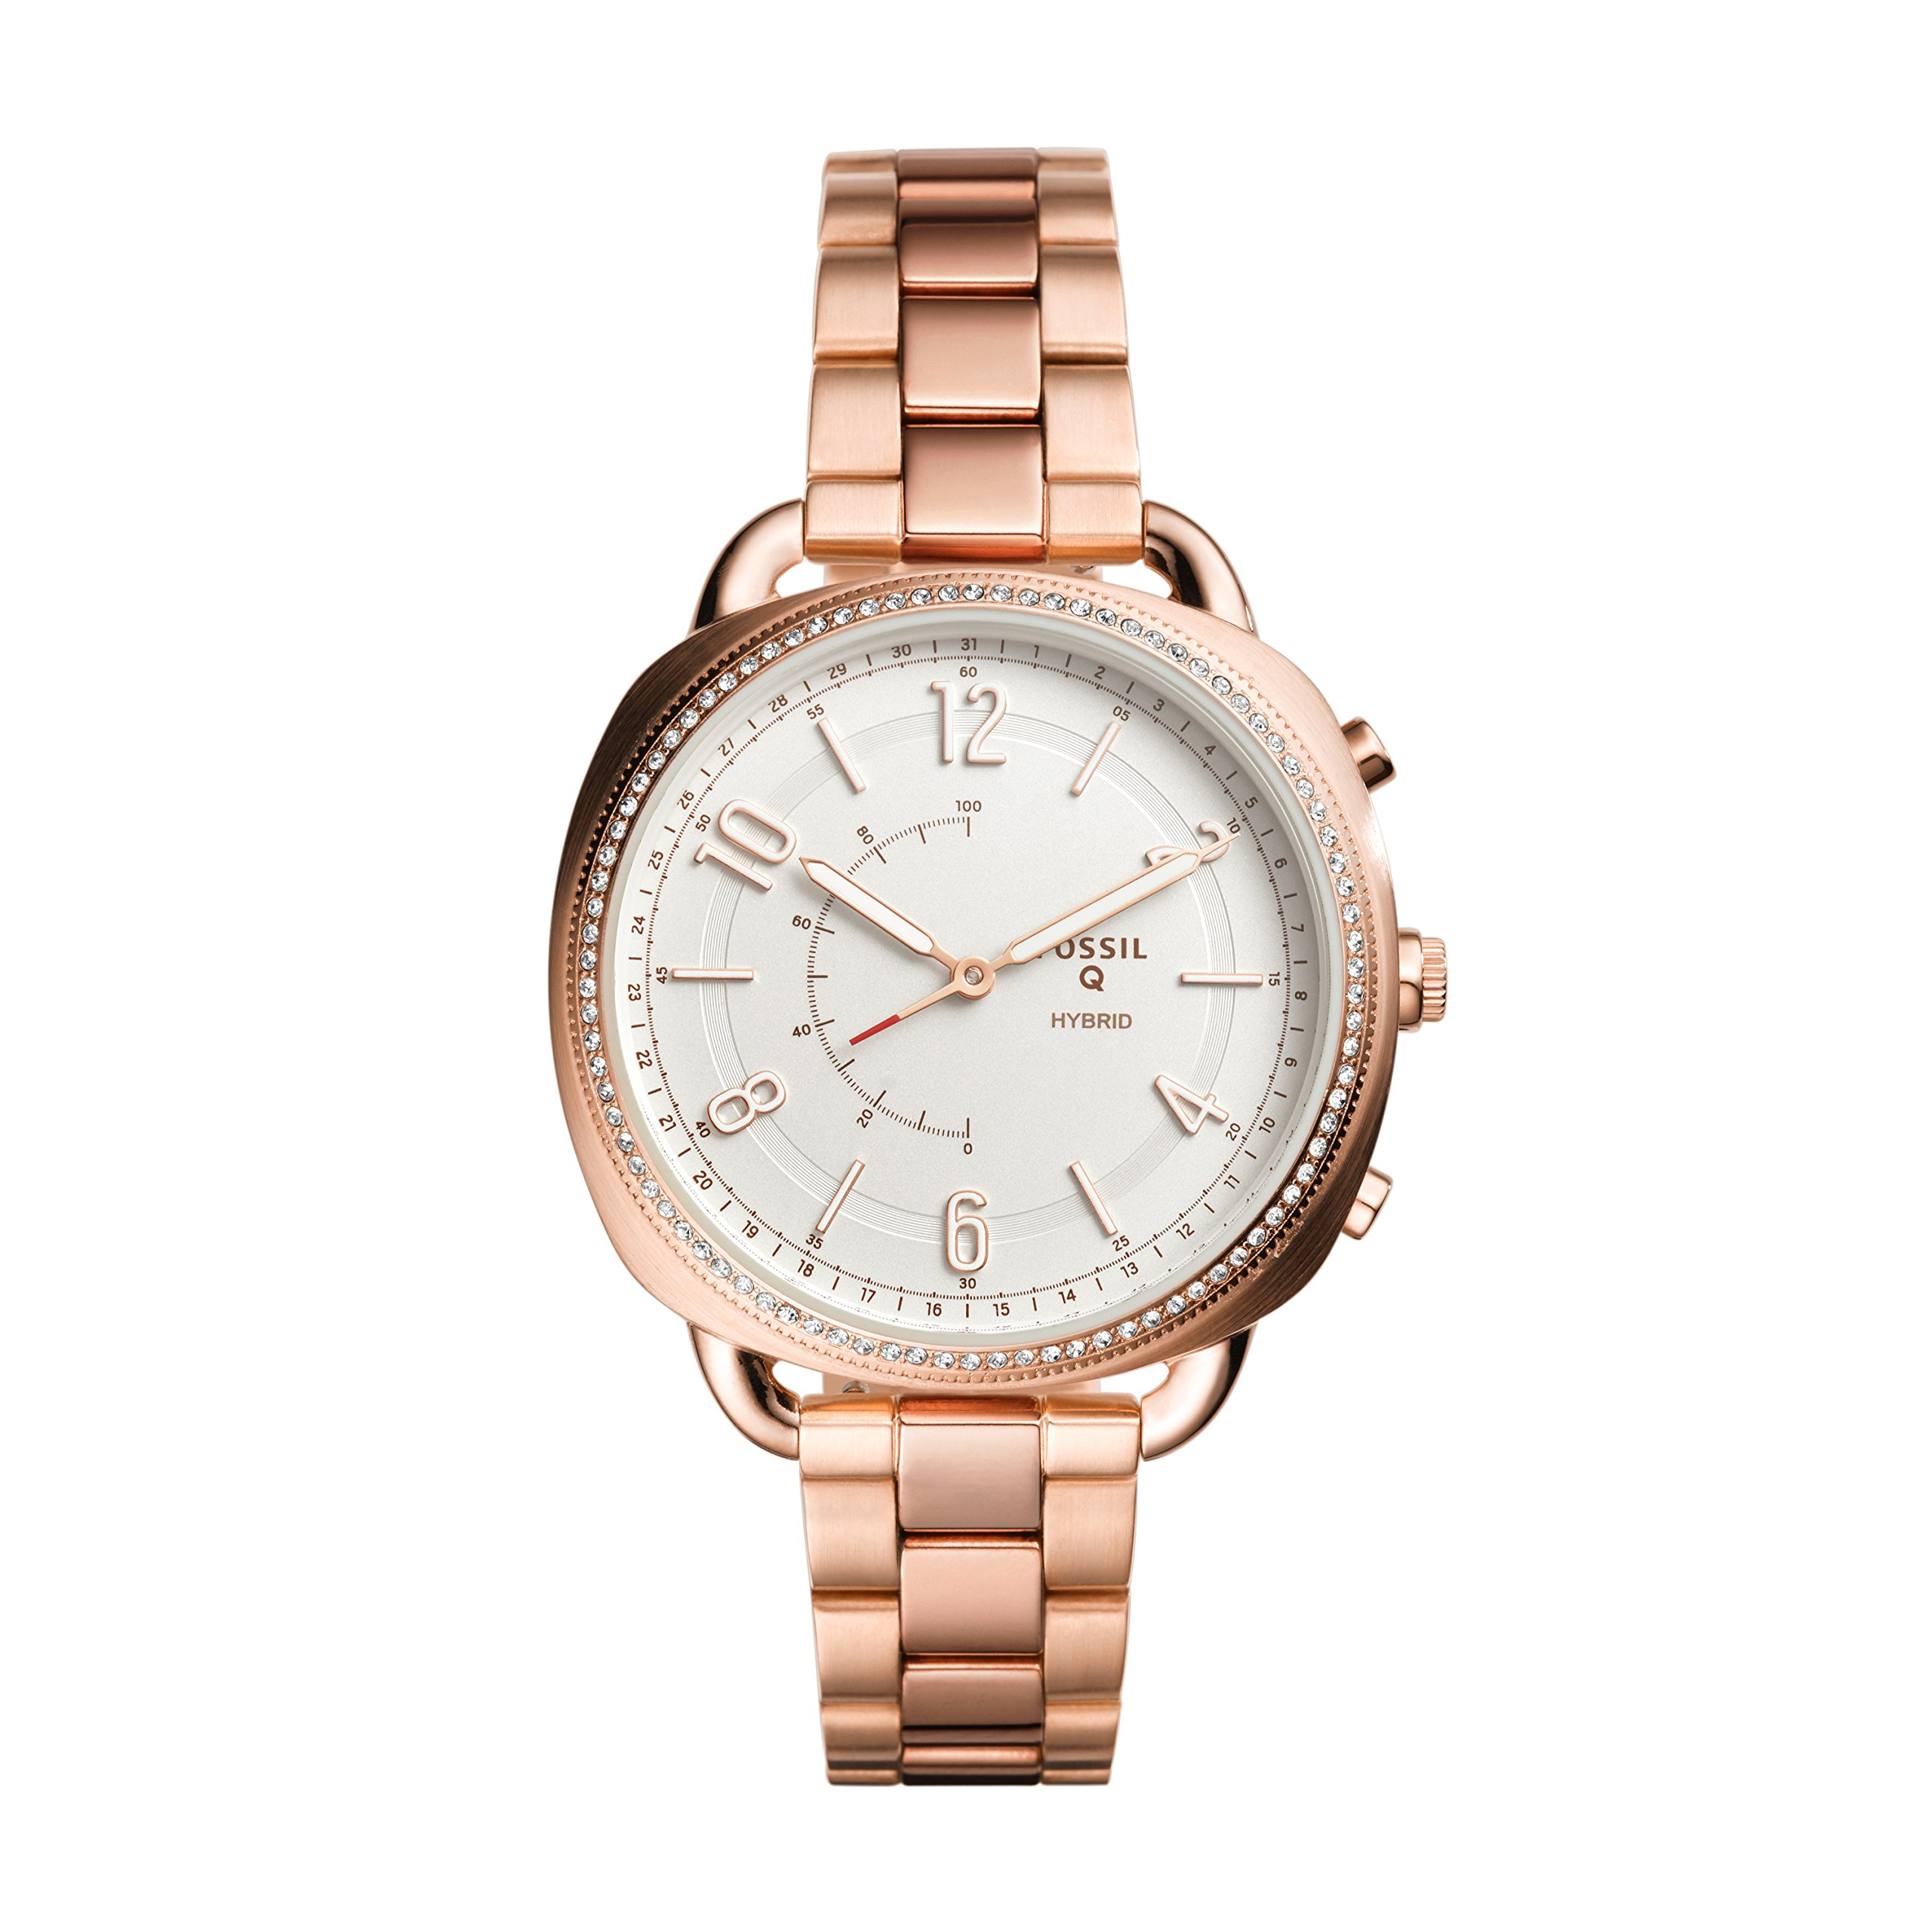 Fossil Women's Accomplice Stainless Steel Hybrid Smartwatch, Color: Rose Gold (Model: FTW1208) by Fossil